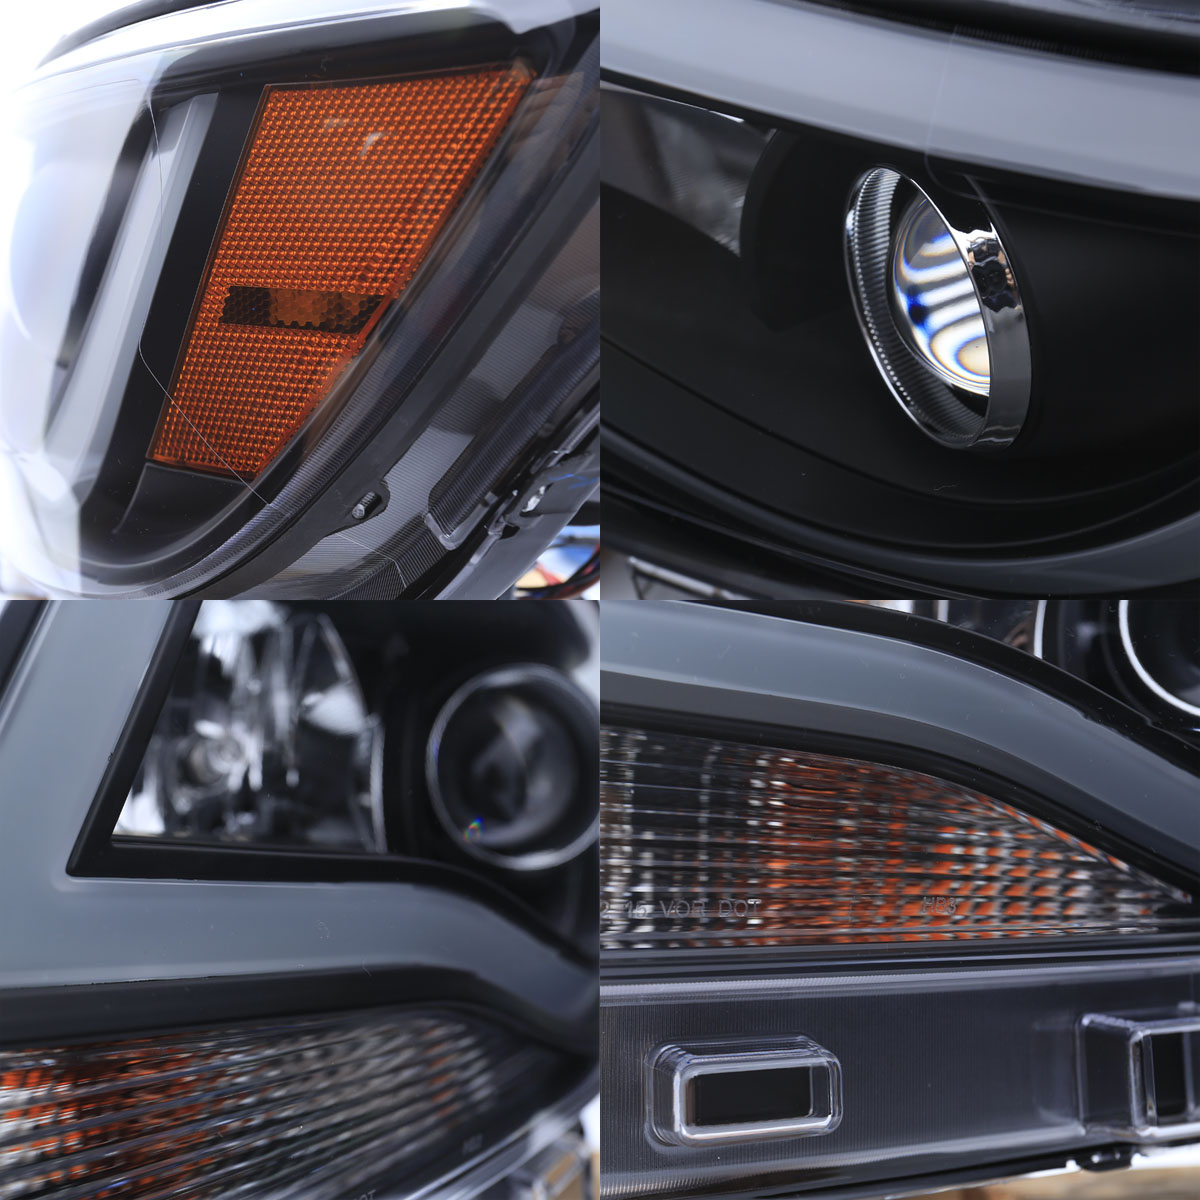 Set Black Fog Lamp Spot Light Fit Chevrolet Colorado: 2015-2017 Chevy Colorado [Neon Frost Tube] Projector Black